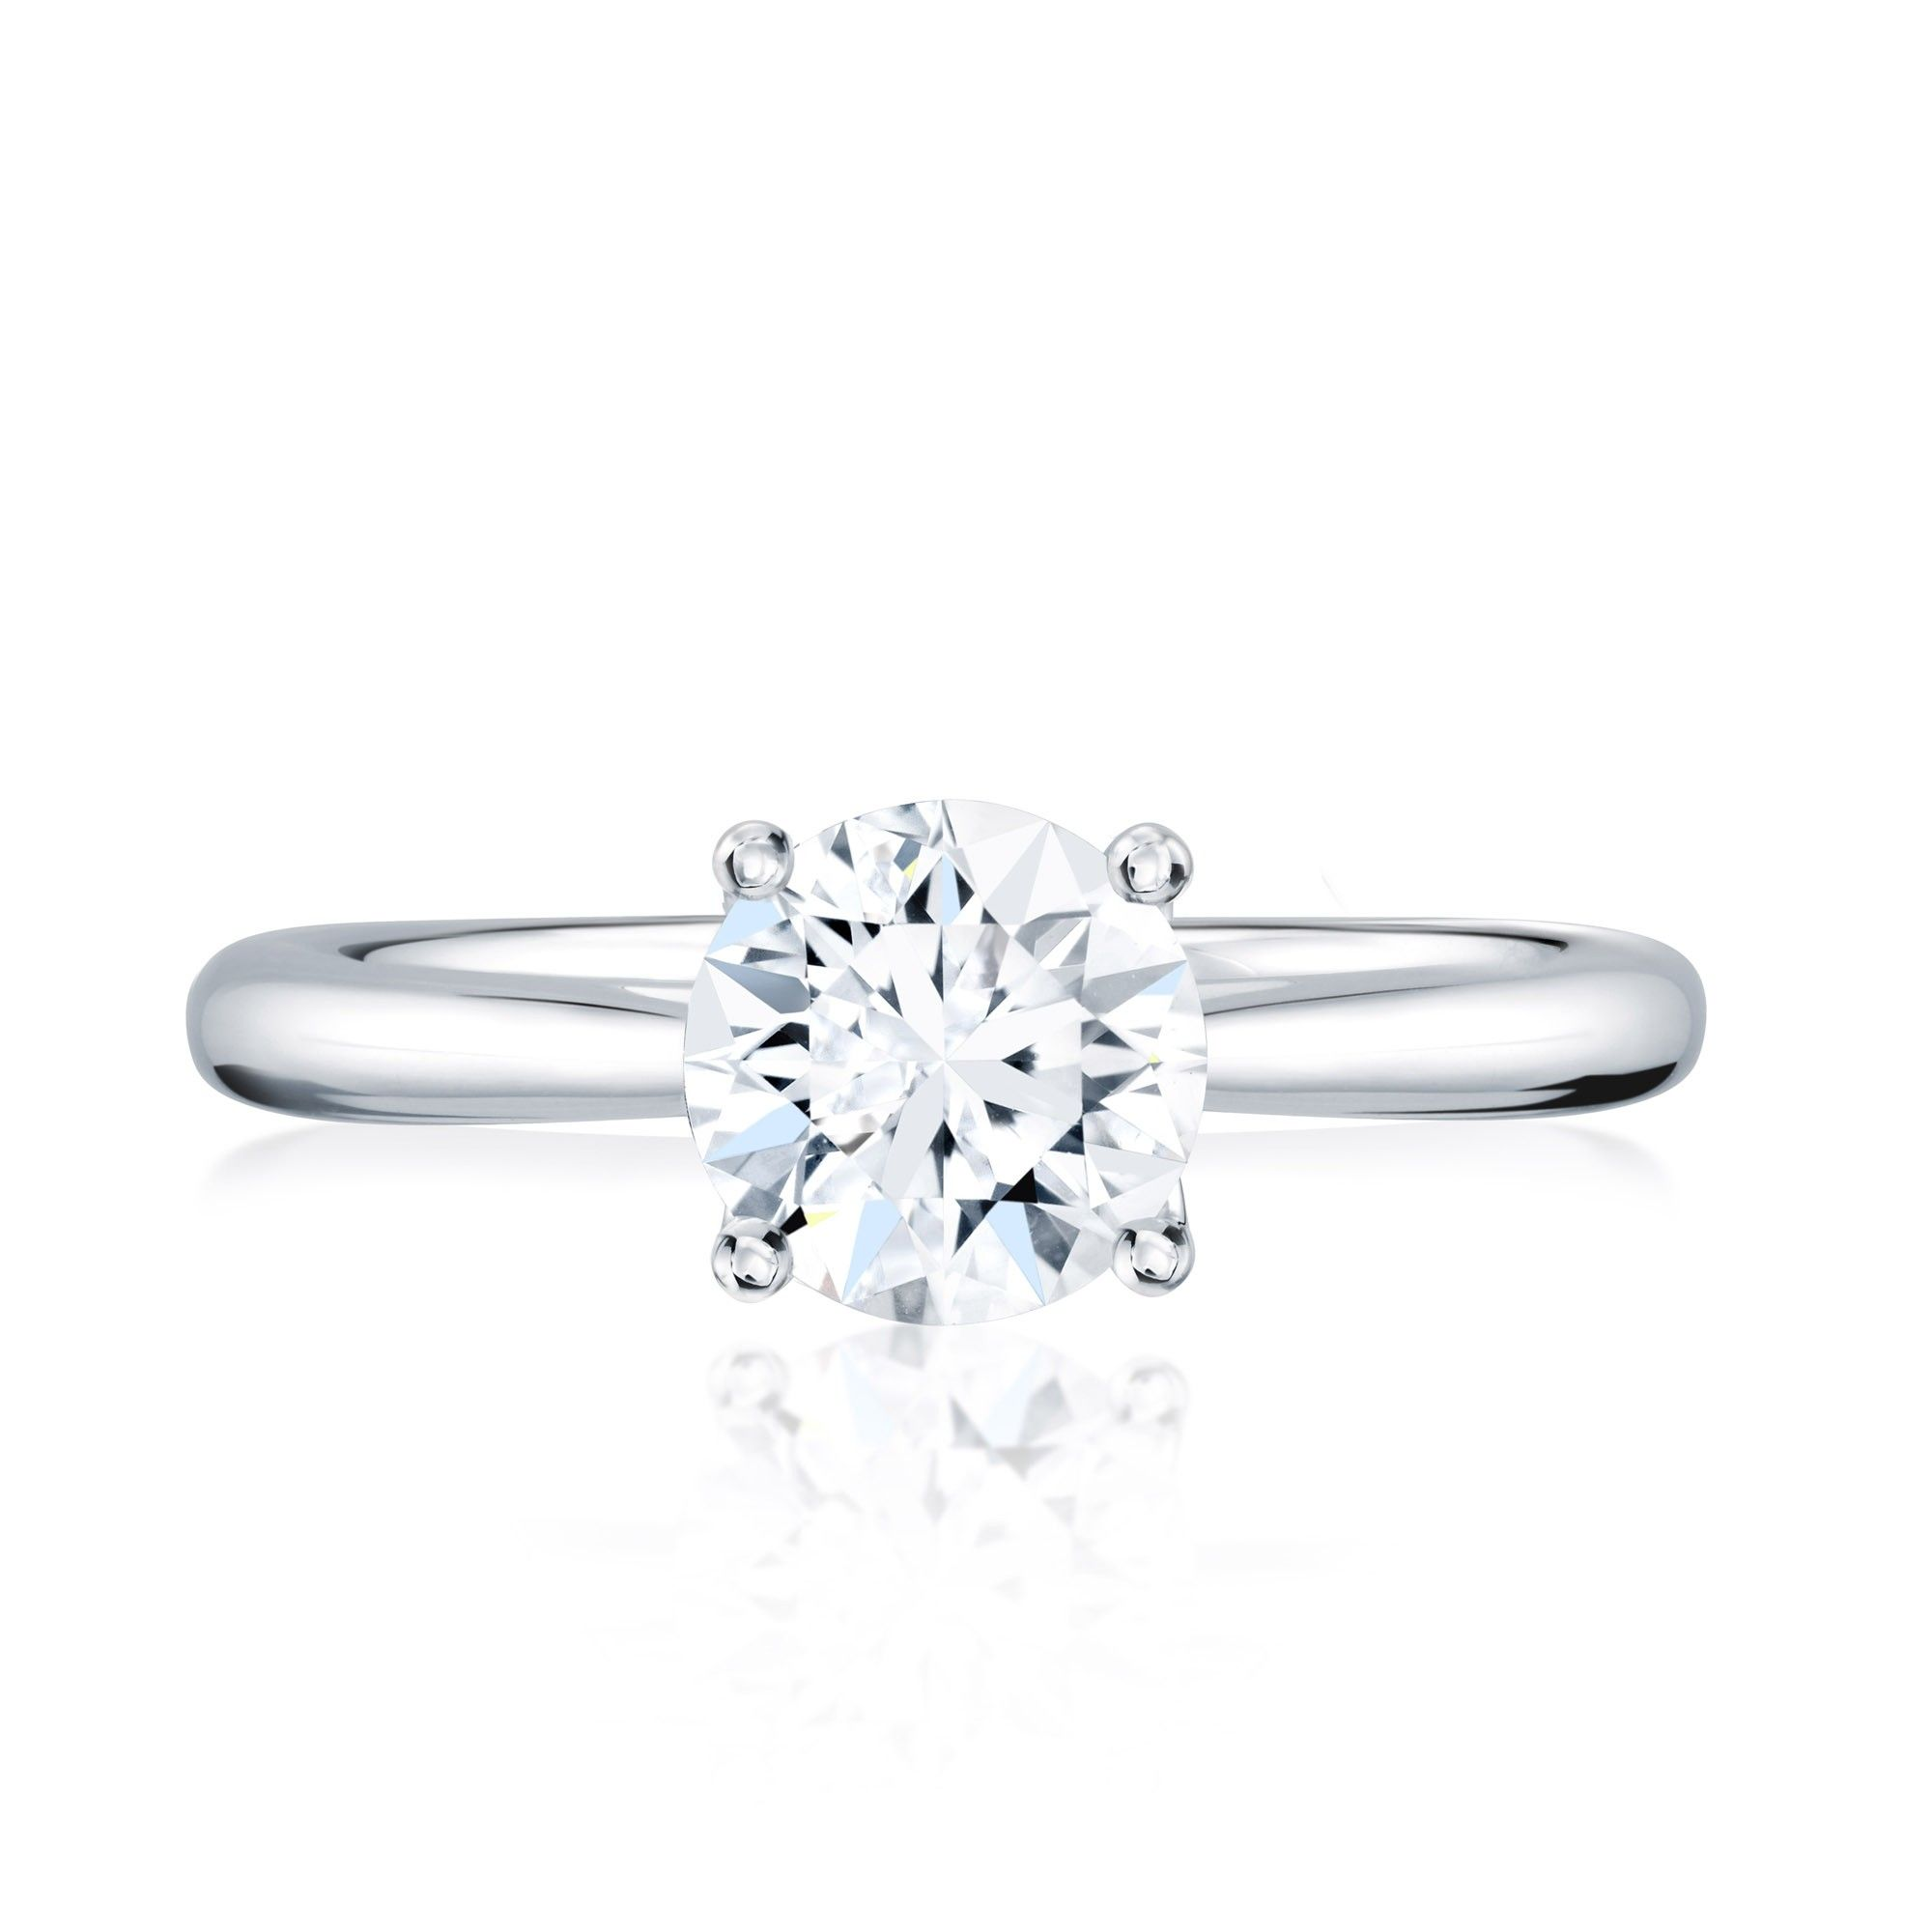 From The BIRKS 1879 Collection This 18kt White Gold And Platinum Solitaire Diamond Engagement Ring